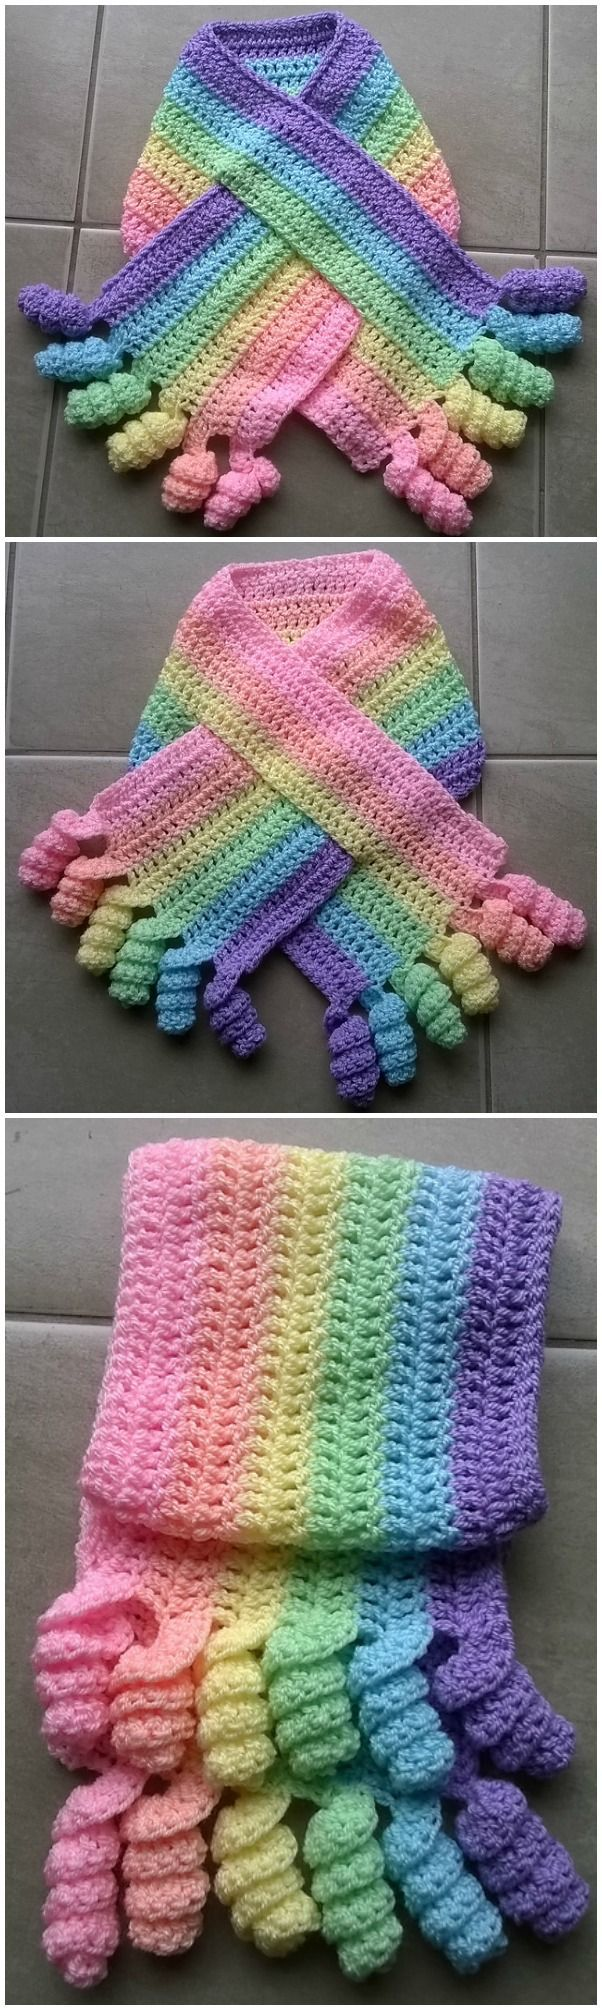 Such a delightful looking Crochet Baby Scarf! Love it!